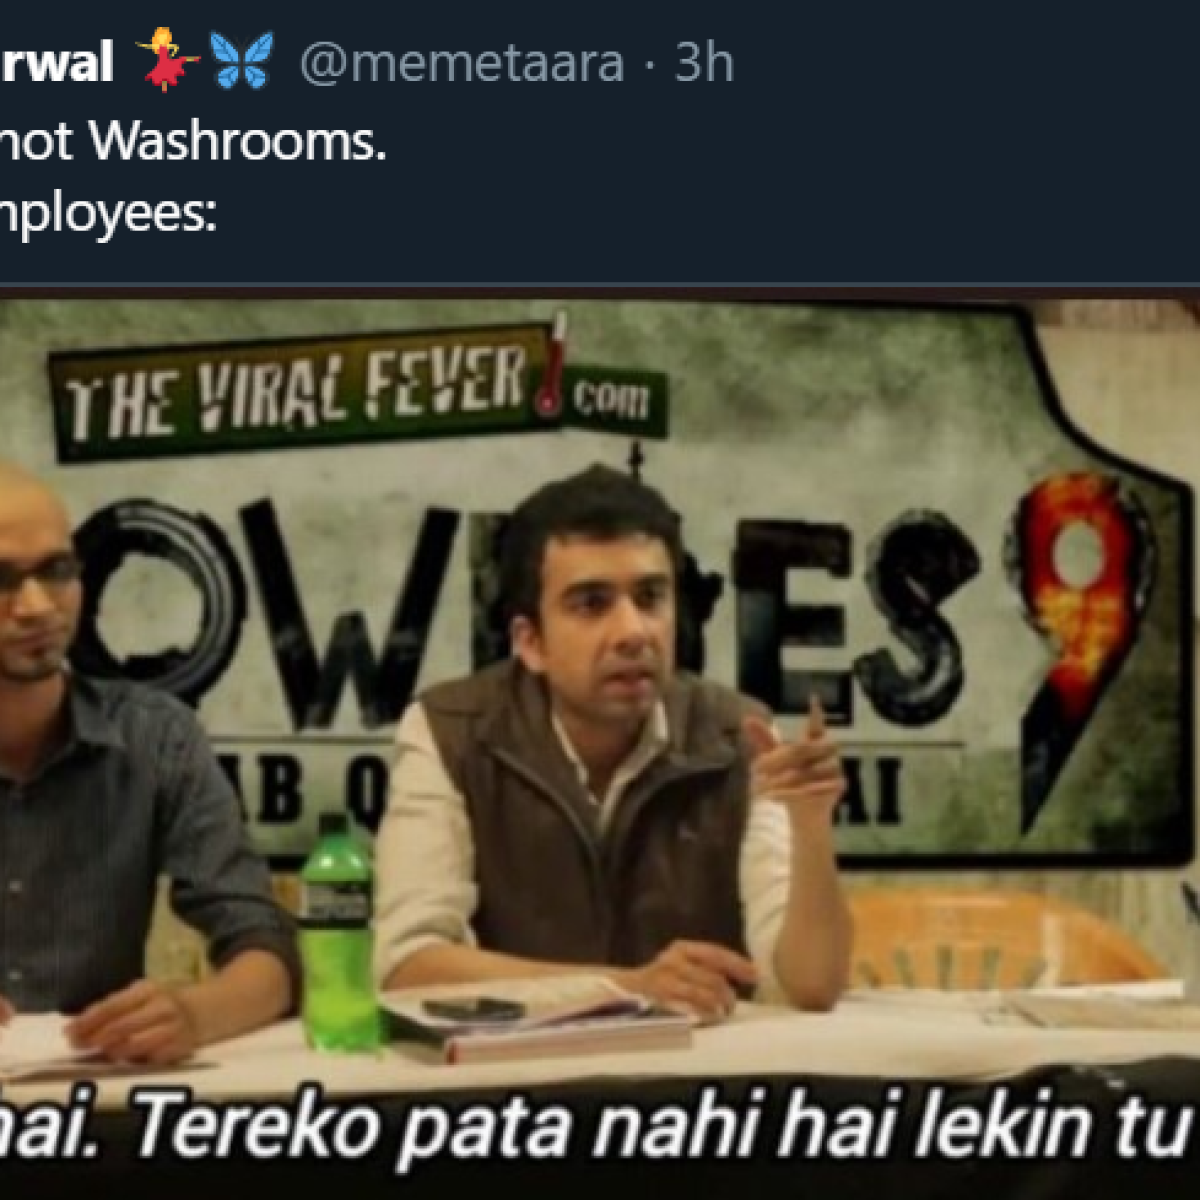 FPJ Fun Corner: Best WhatsApp memes and jokes to lighten your mood amid COVID-19 on July 2, 2020